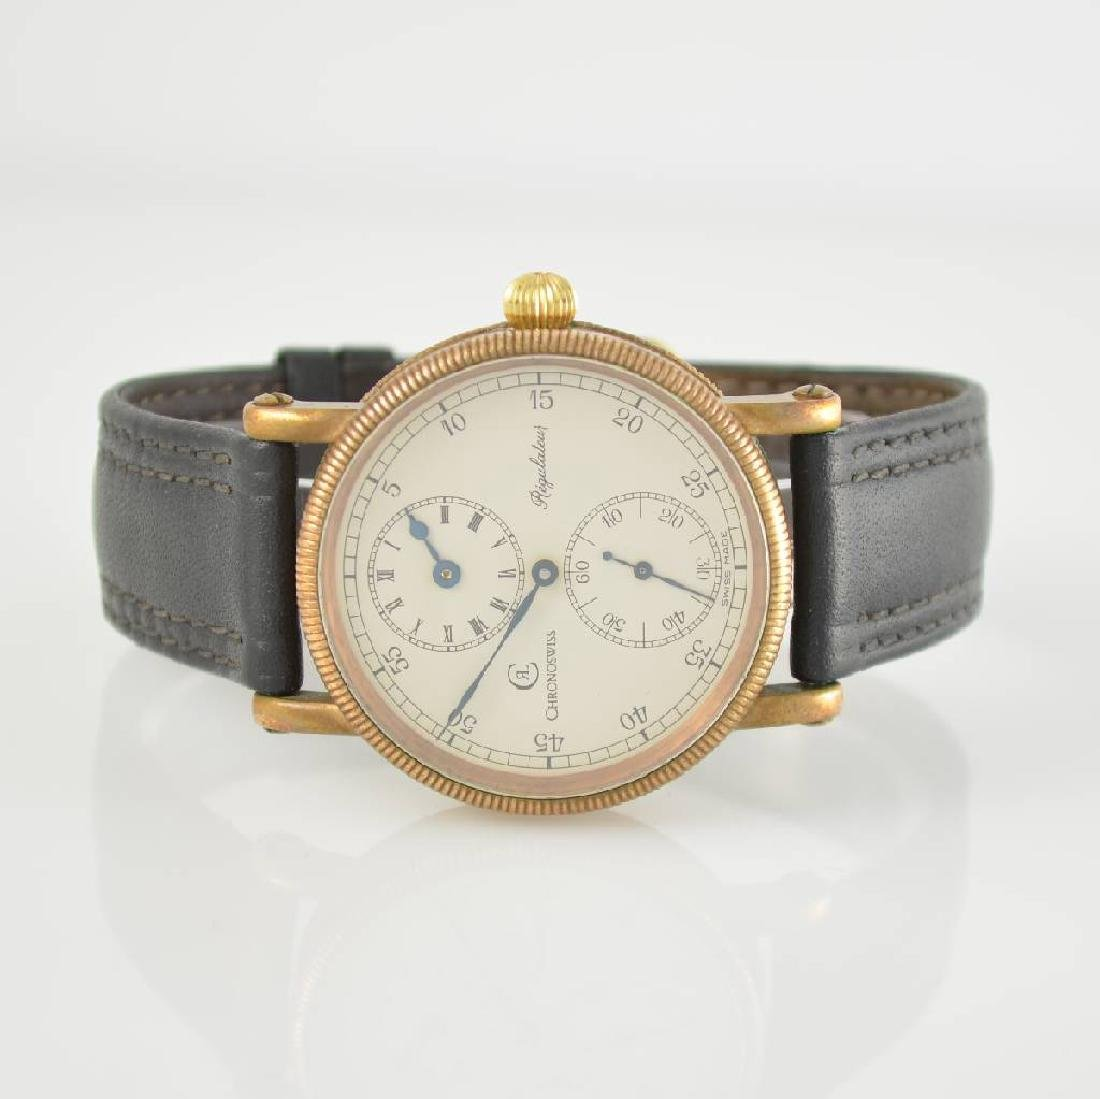 CHRONOSWISS rare gents wristwatch Regulateur in bronce